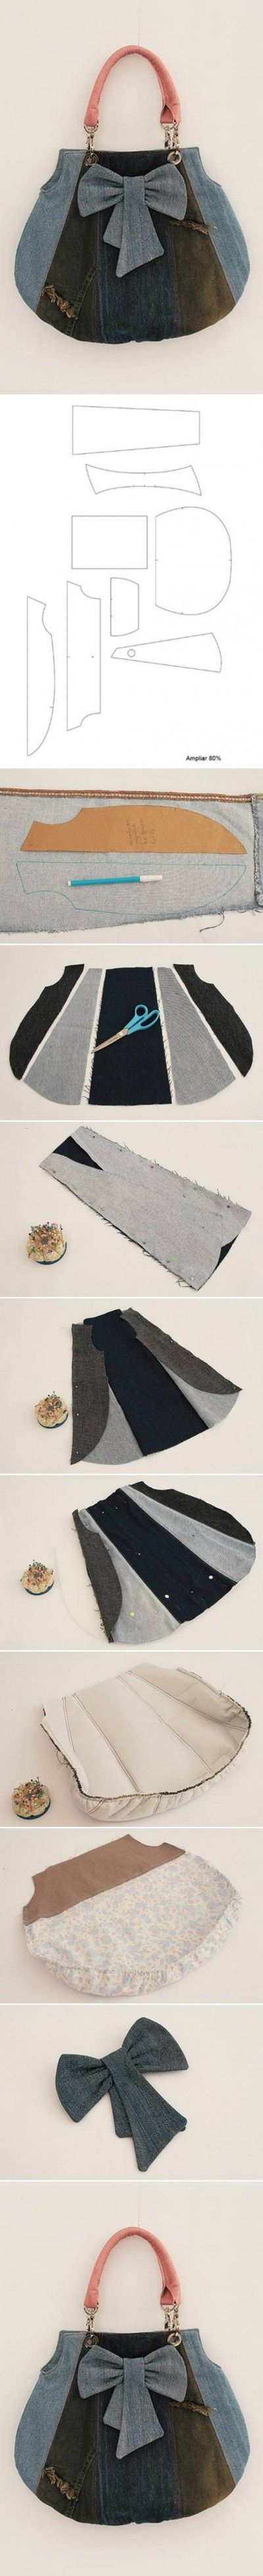 How to make Old Jeans Fashion Bag step by step DIY tutorial instructions 400x3913 How to make Old Jeans Fashion Bag step by step DIY tutoria...